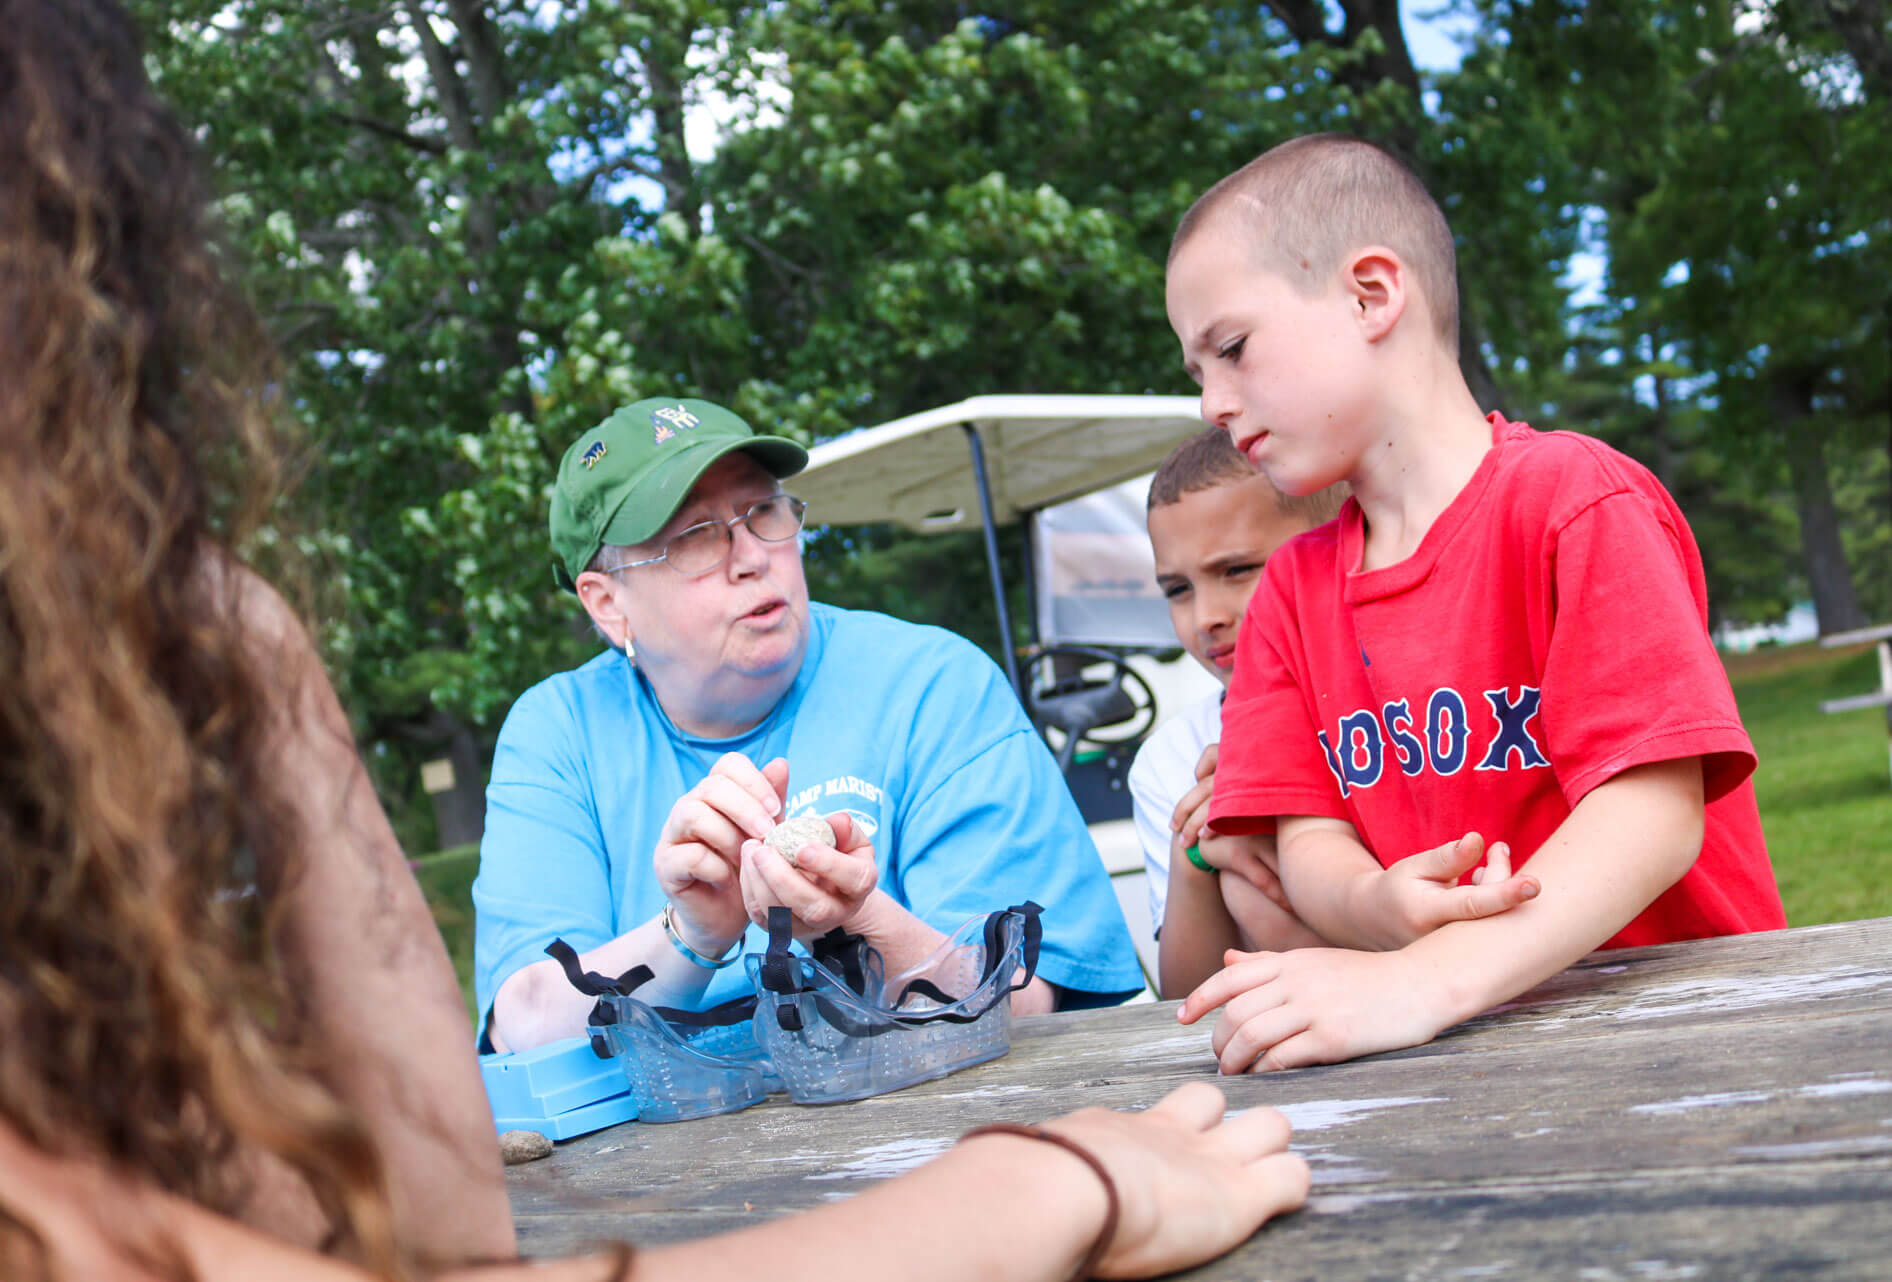 Staff helps young camper with project